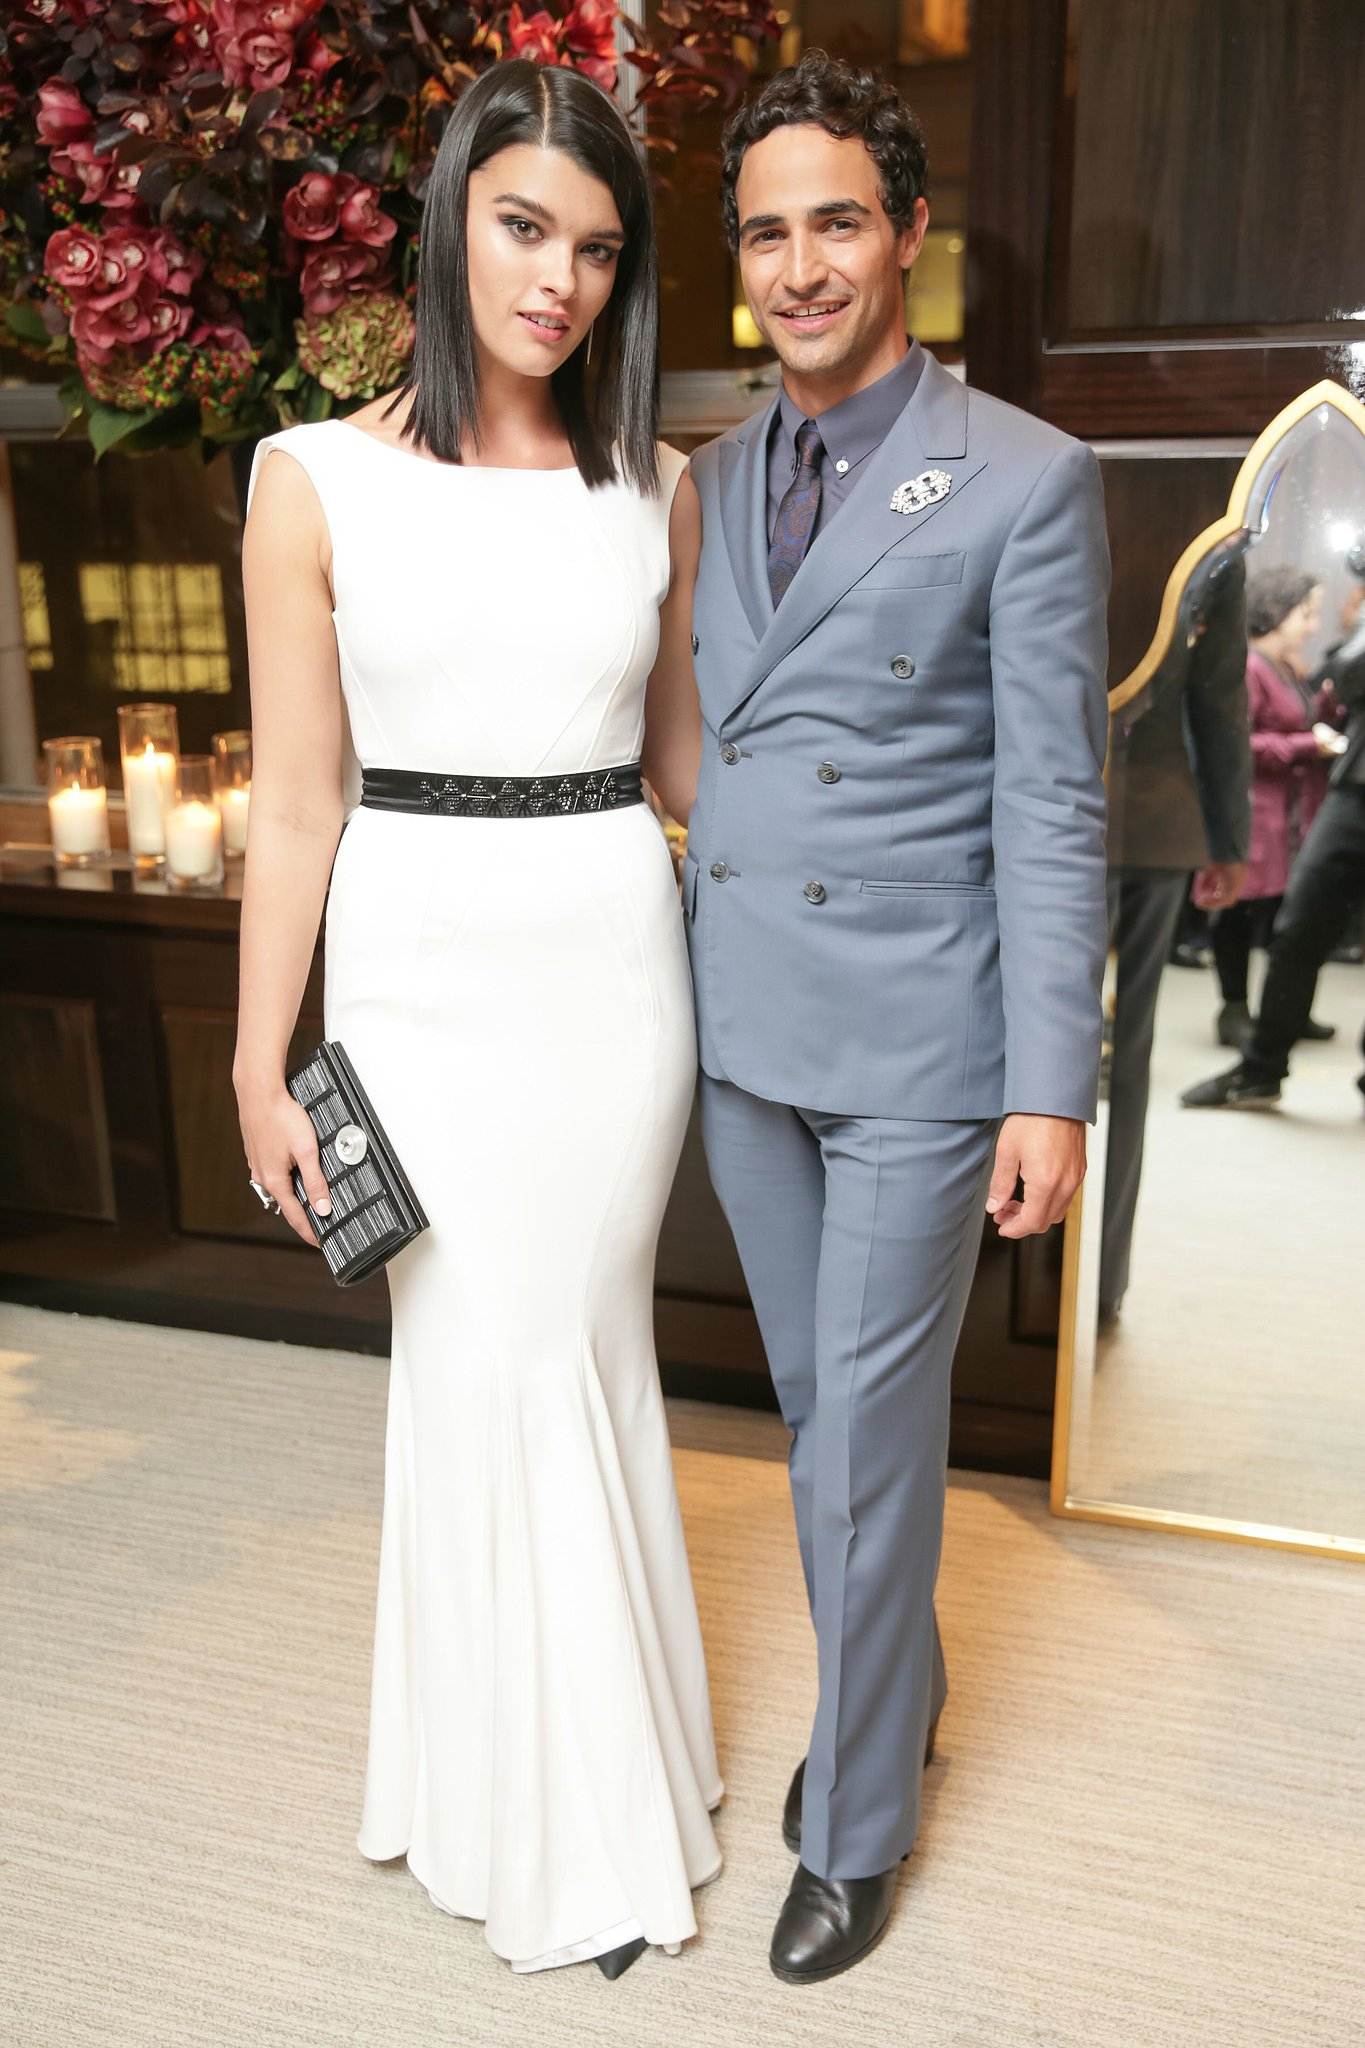 Crystal Renn and Zac Posen flaunted their flawless tailoring at Tiffany & Co.'s Lori Goldstein bash.